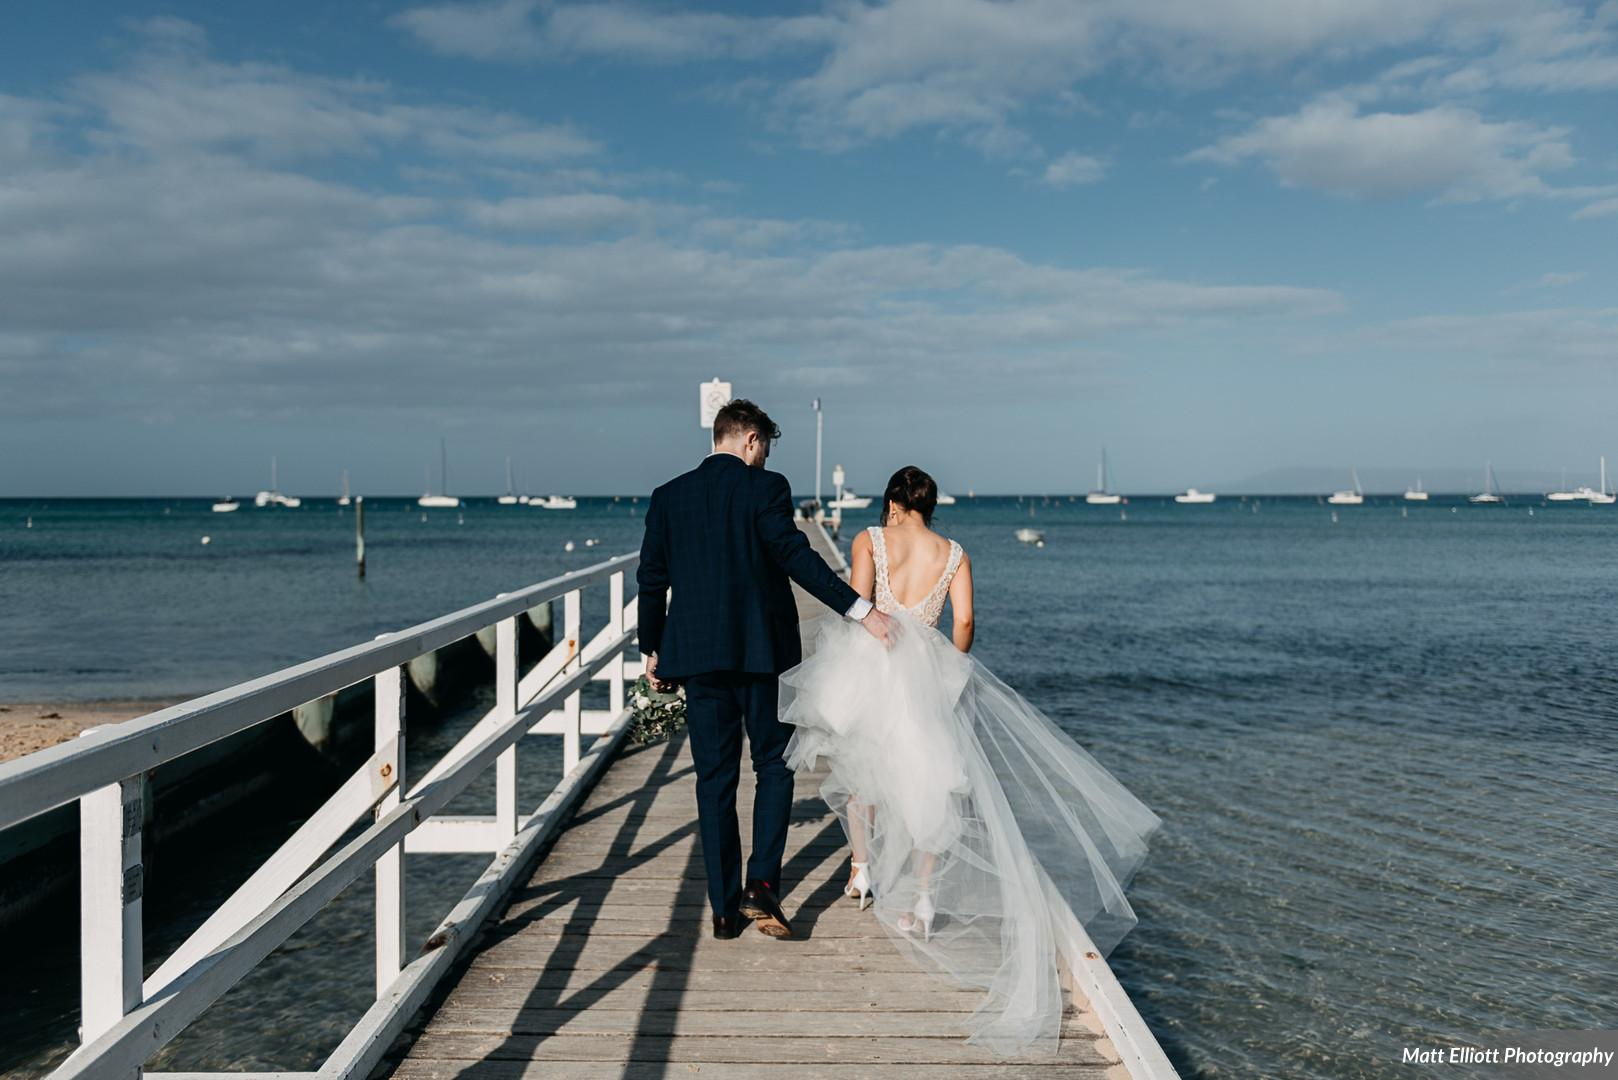 """L + L's Modern Coastal Wedding - """"Fantastic! I told them my budget and theme and she made it happen. The flowers were so fresh on the day and they worked well with our cake supplier. I didn't have to worry about anything!""""~Lisa (Bride)"""